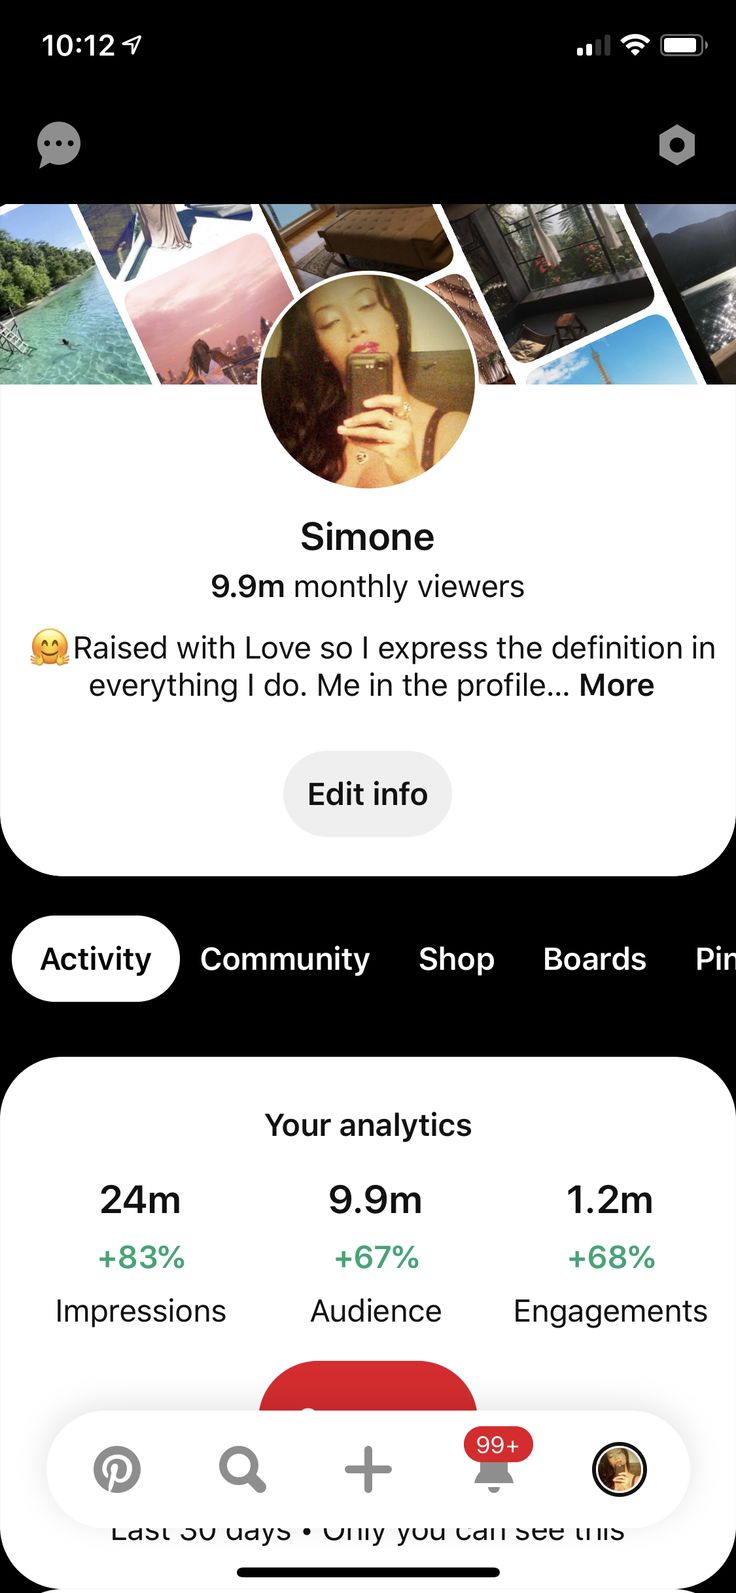 Pin by Simone on All about me in 2020 Audience